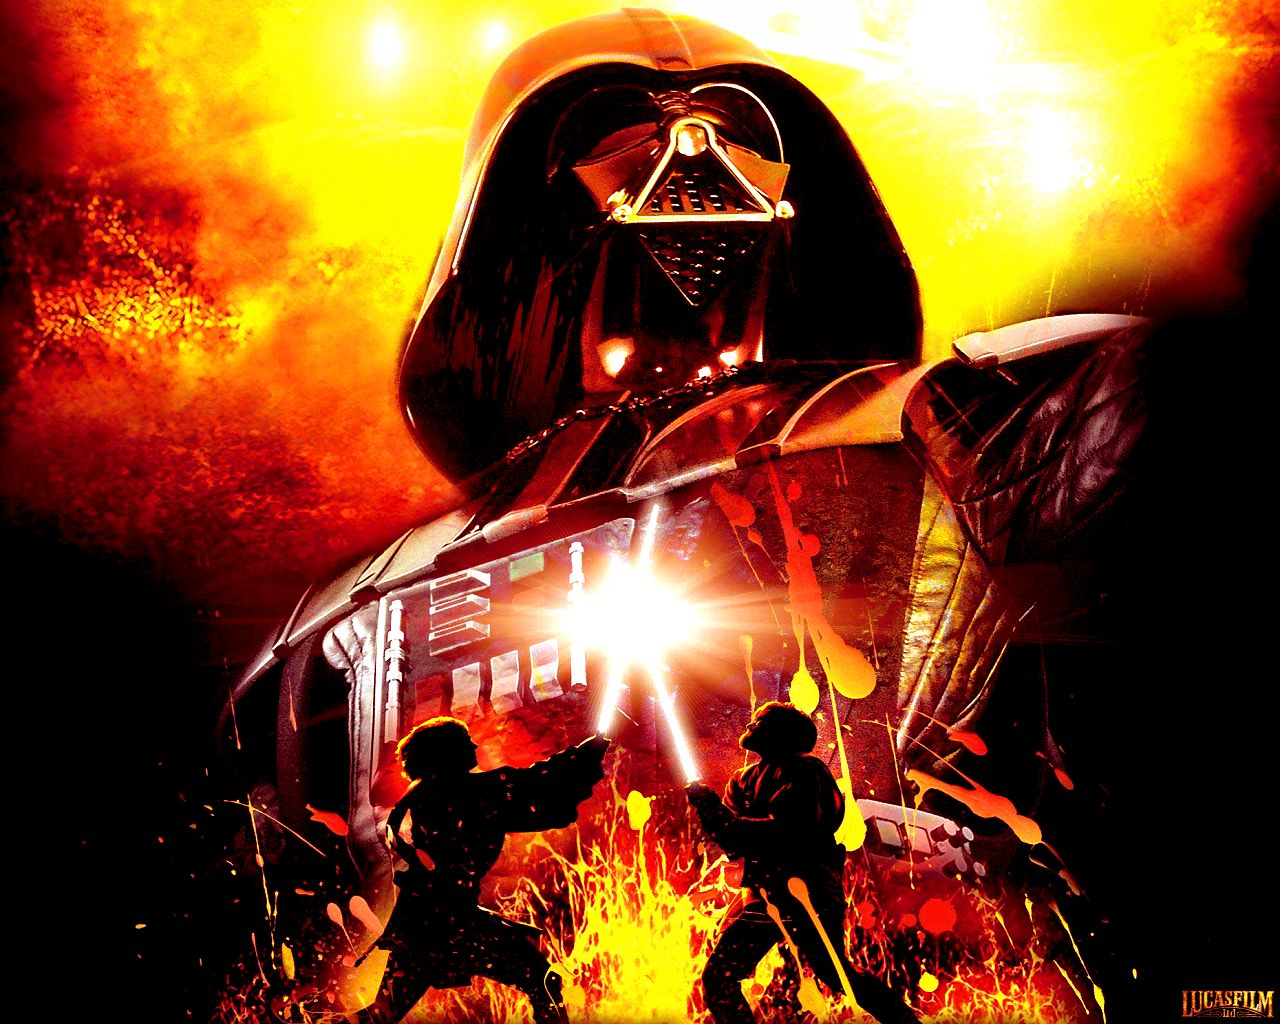 Free Download Fi Star Wars Revenge Of The Sith Matthew Stover